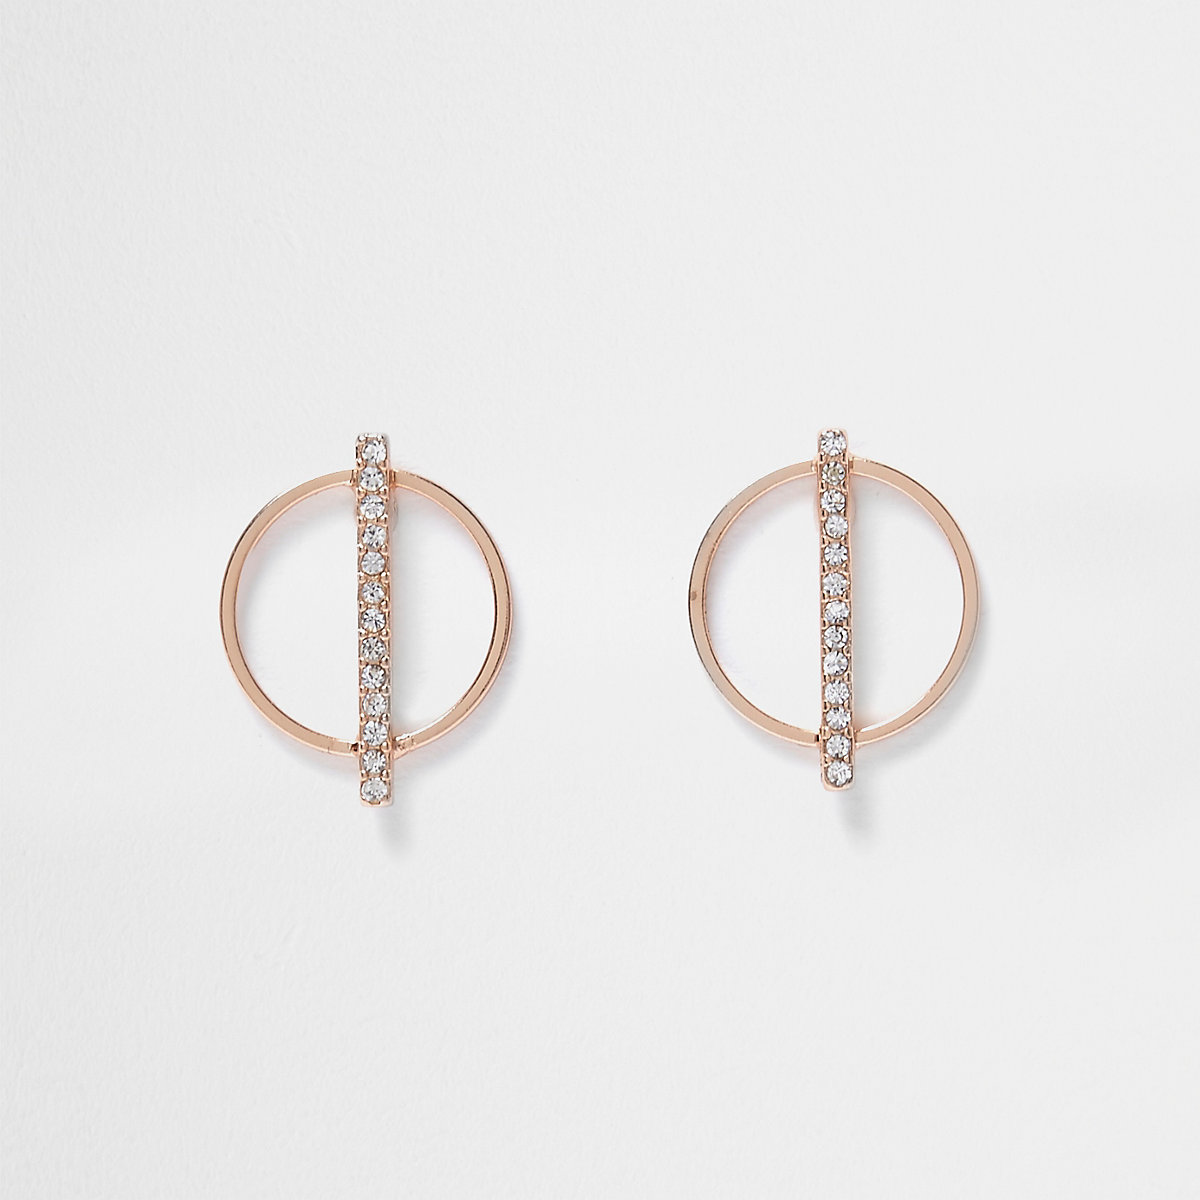 Rose gold tone circle rhinestone earrings